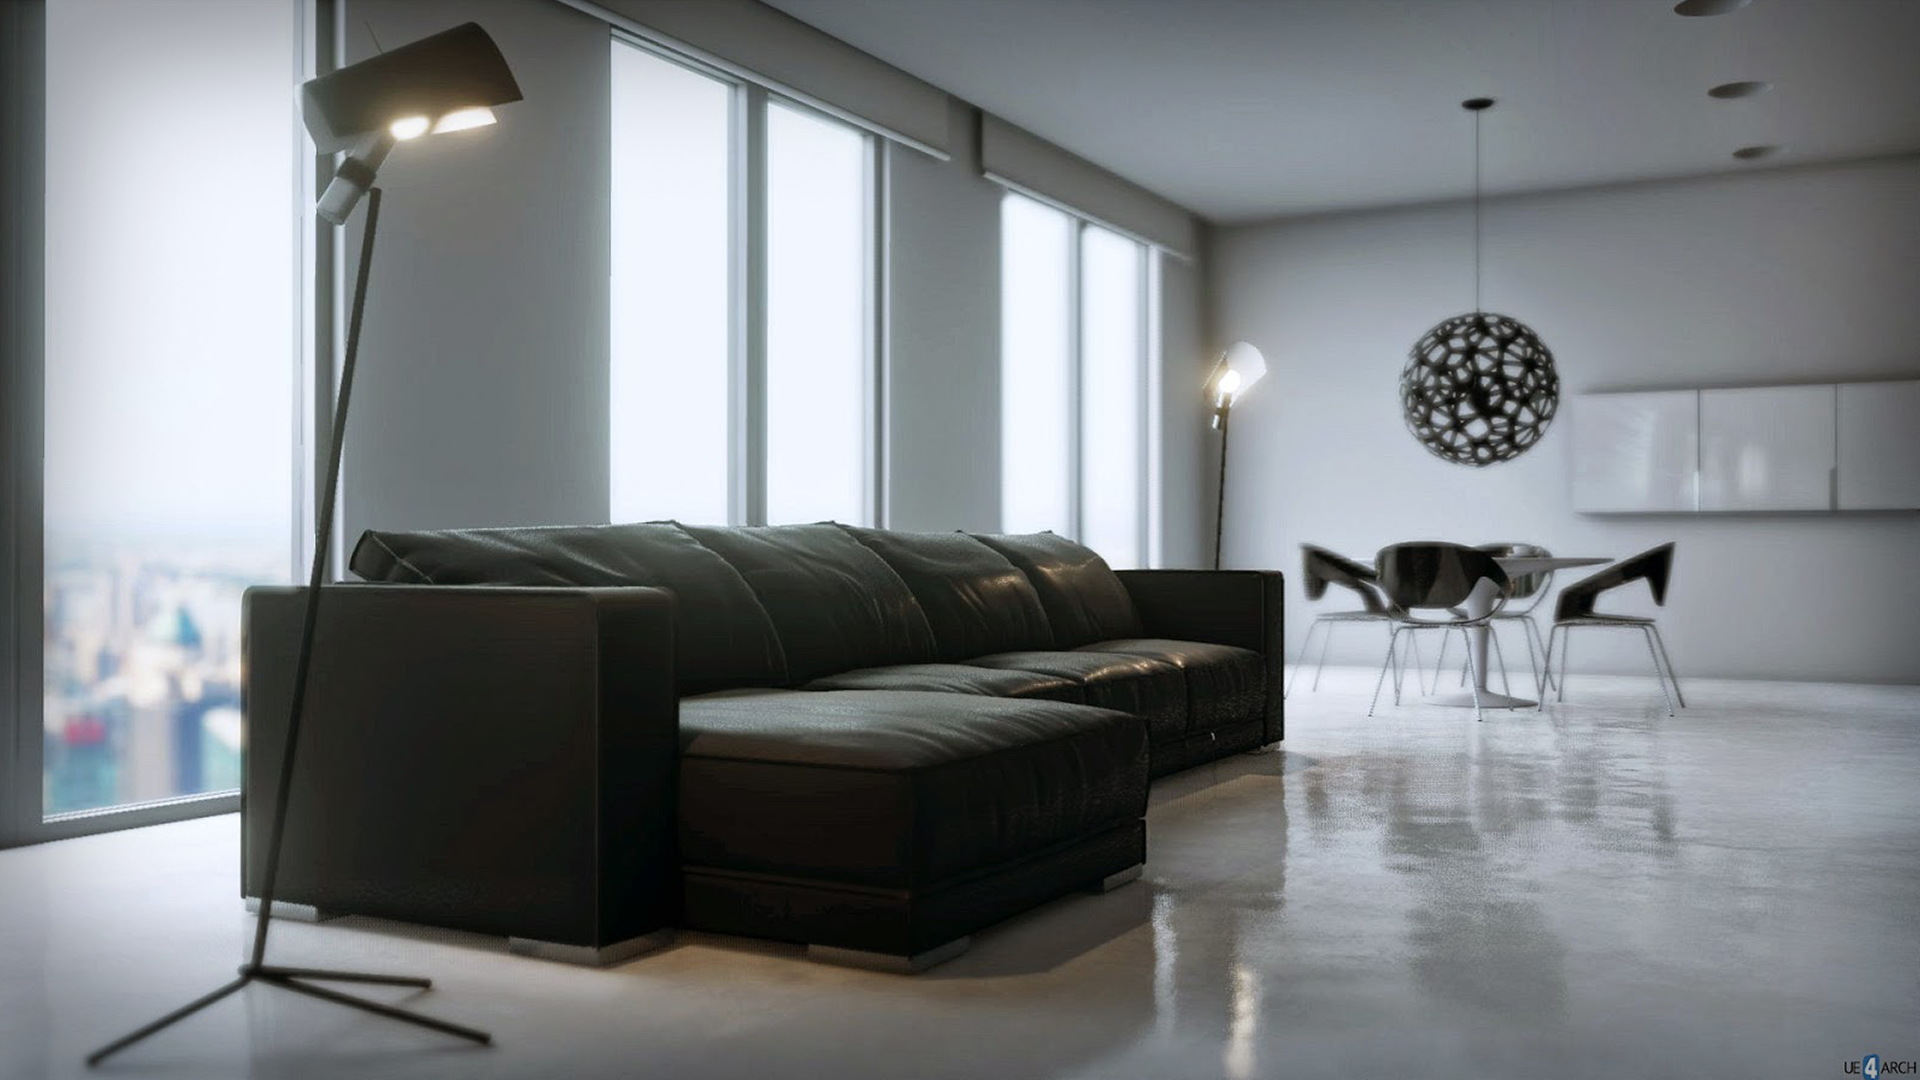 minimalist apartment by 4archviz in architectural visualization ue4